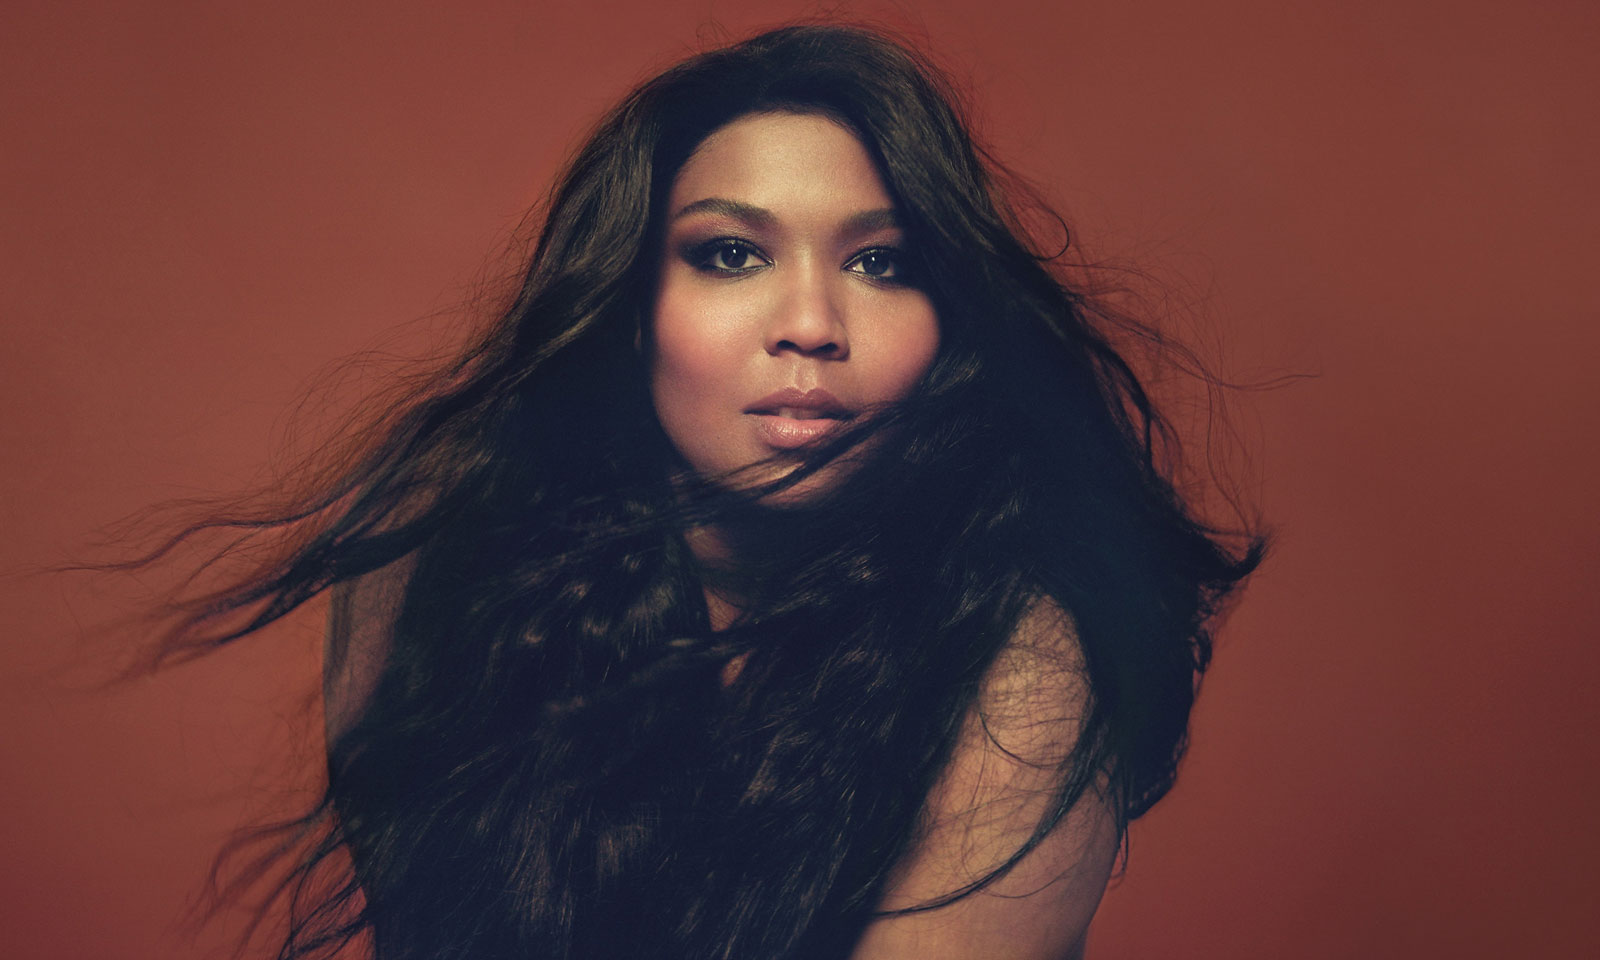 Absolut Vodka and singer Lizzo